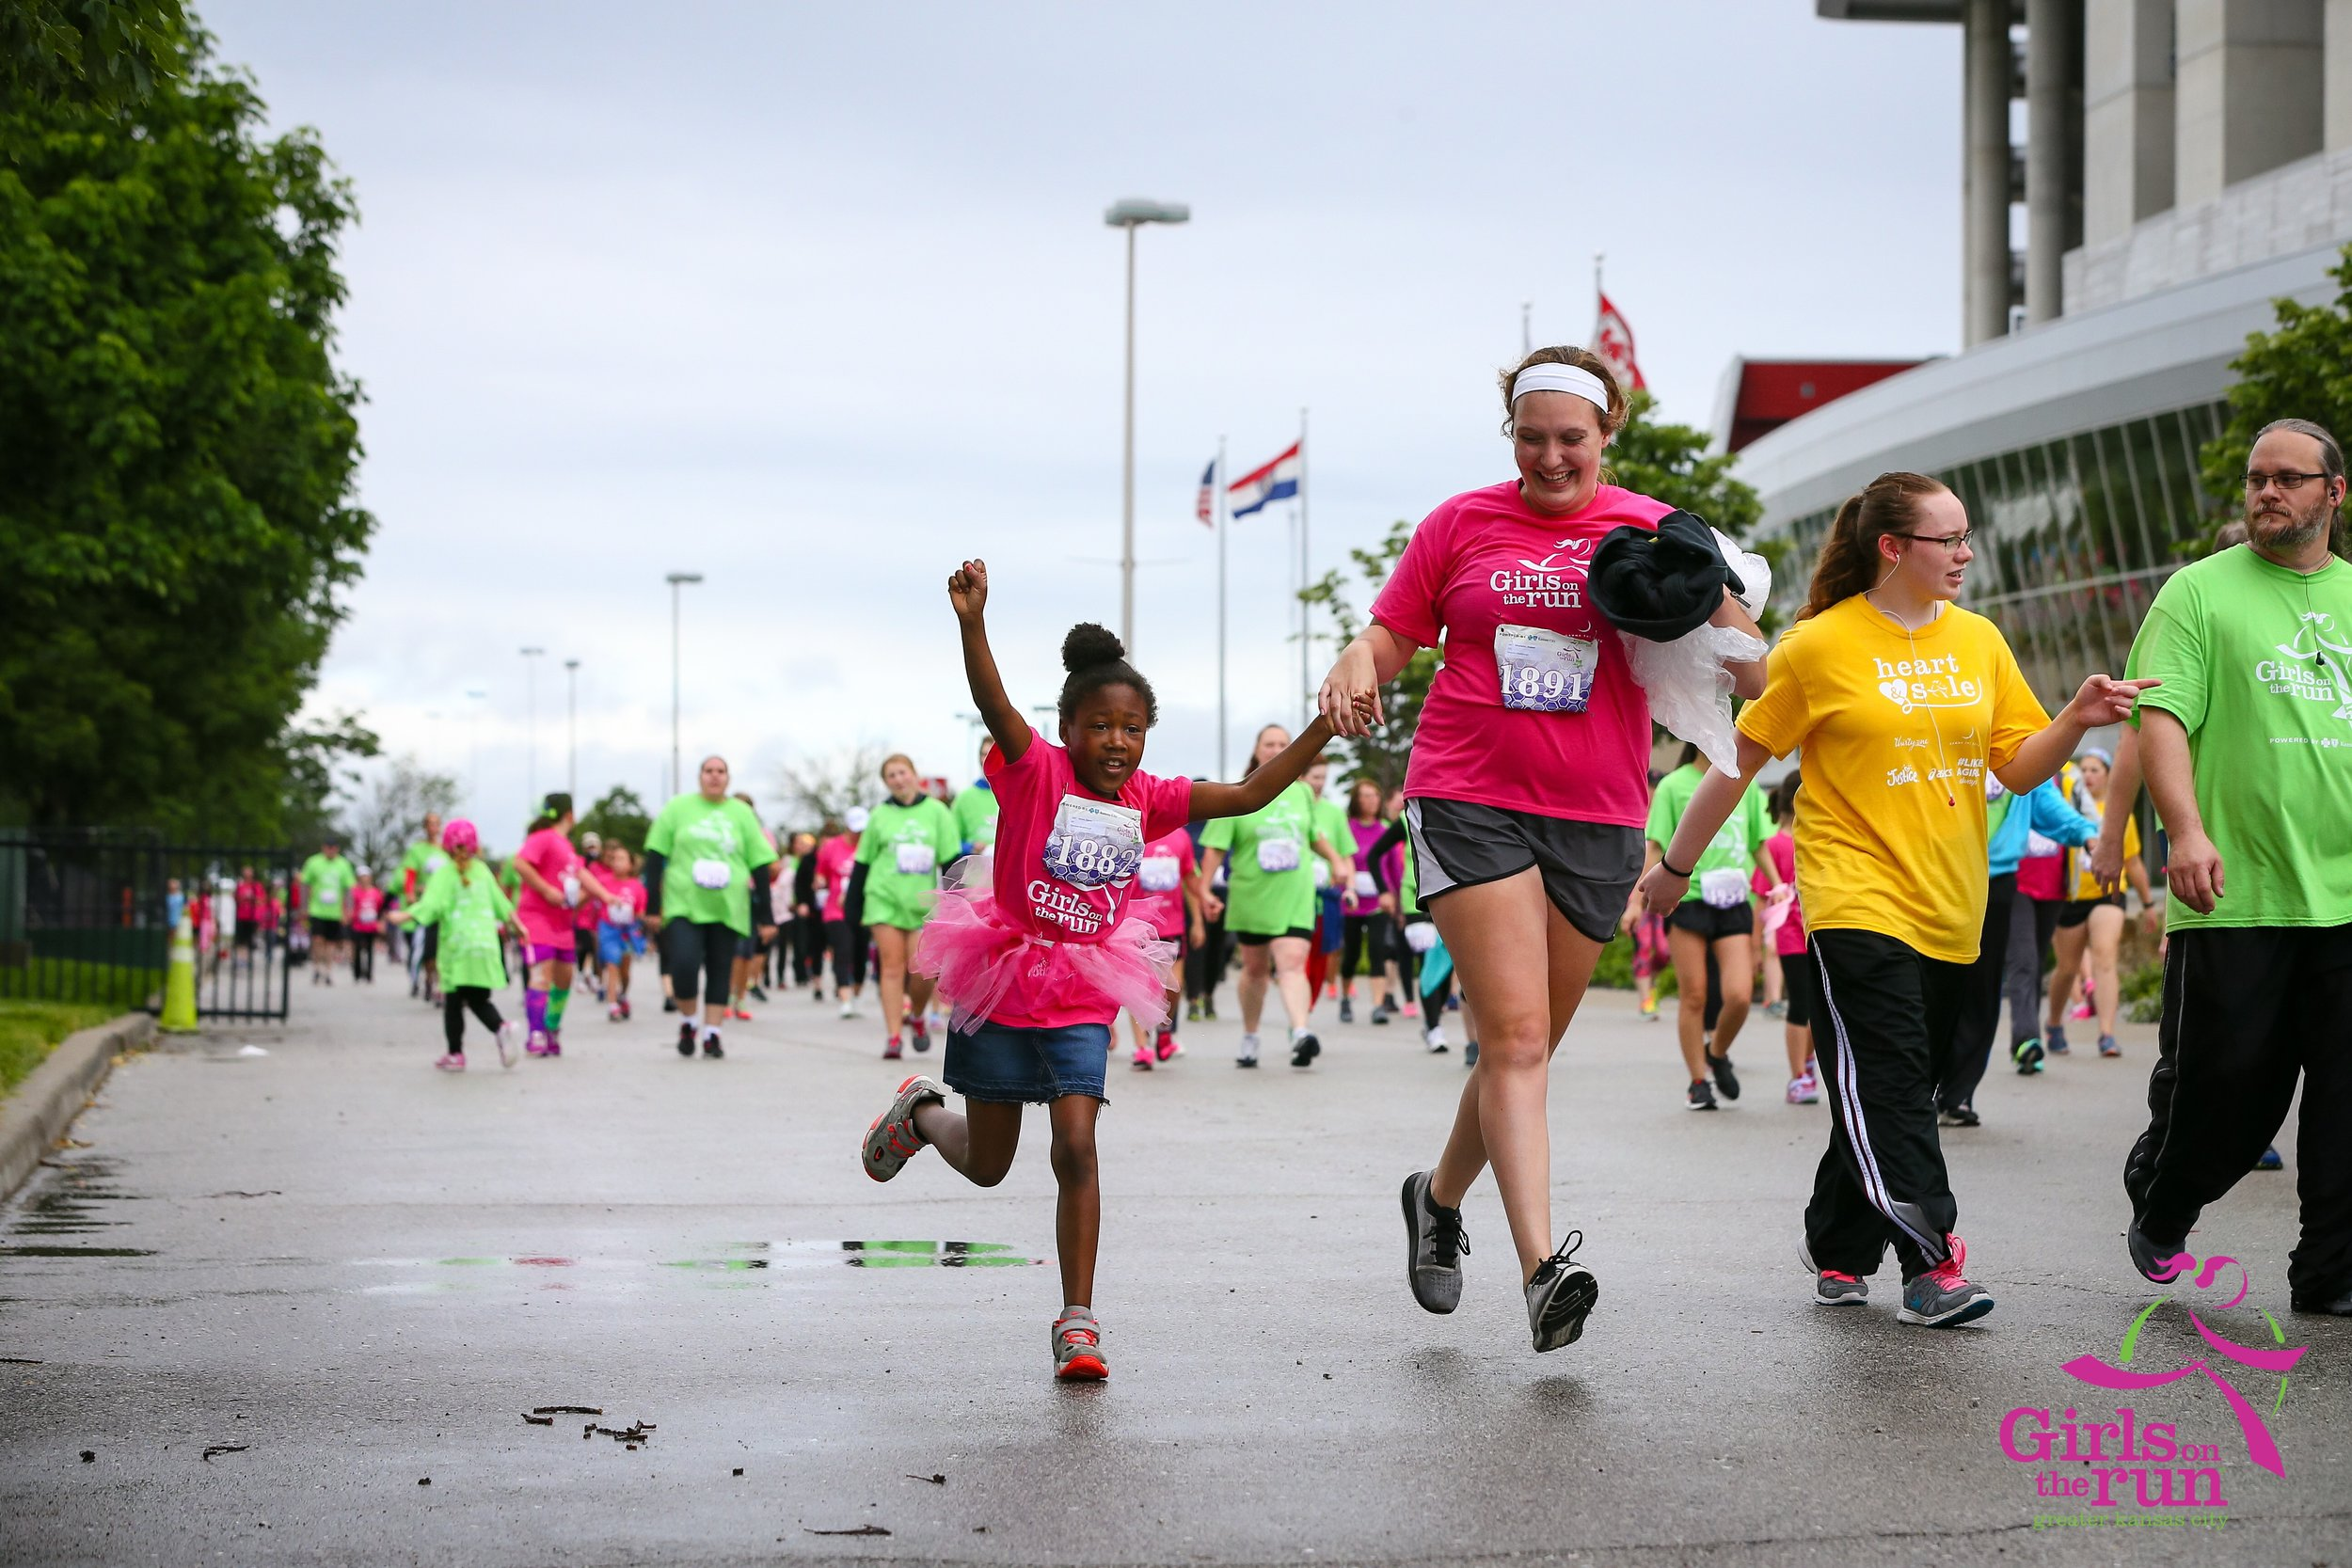 """Lis and Zi'yerra """"Zippy"""" near the finish line at a Girls on the Run race."""